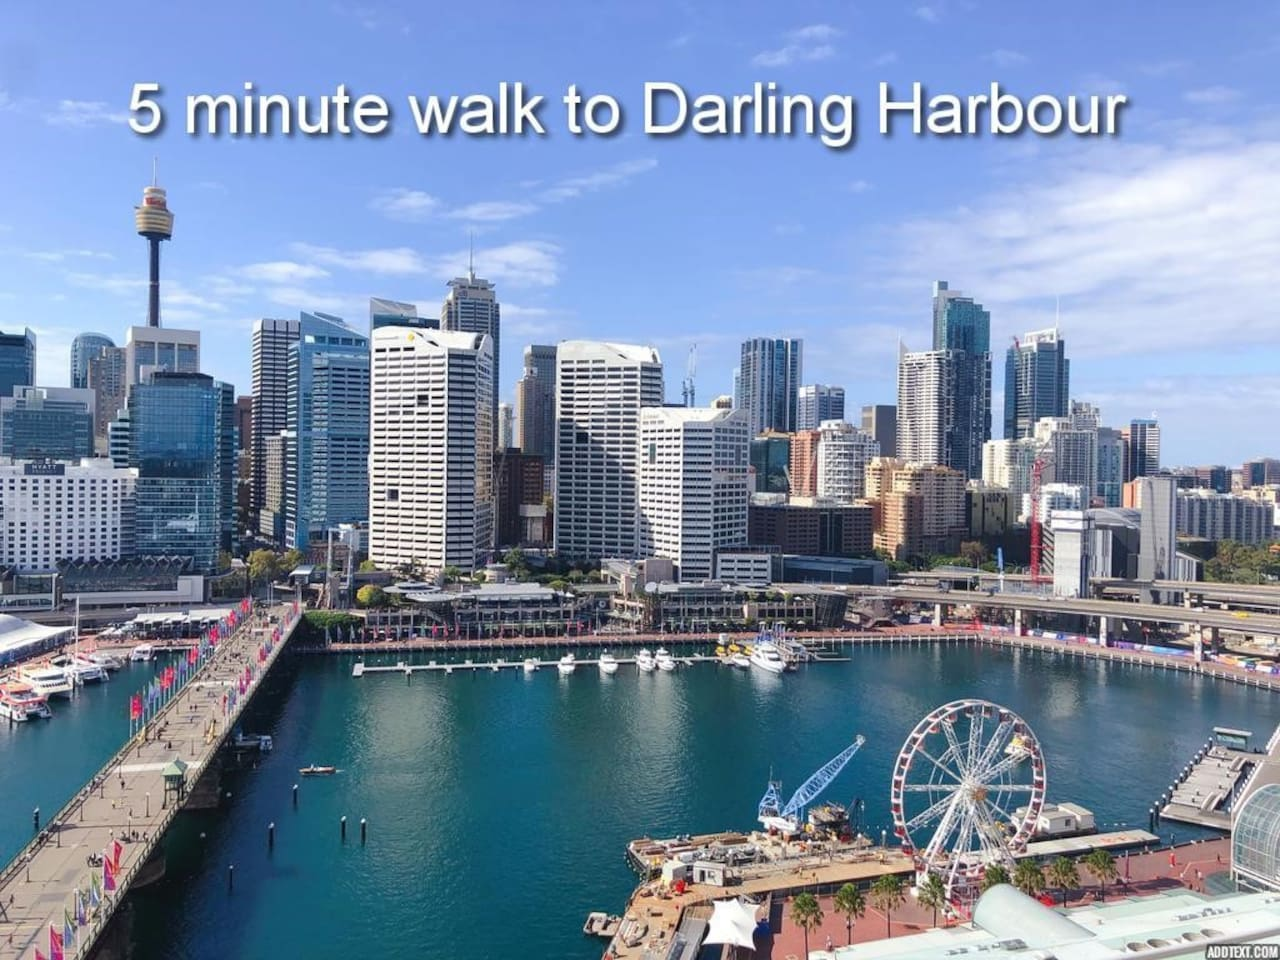 The perfect location for your stay - Only 450 metres walk to Darling Harbour, and 2 minutes to The Star Casino